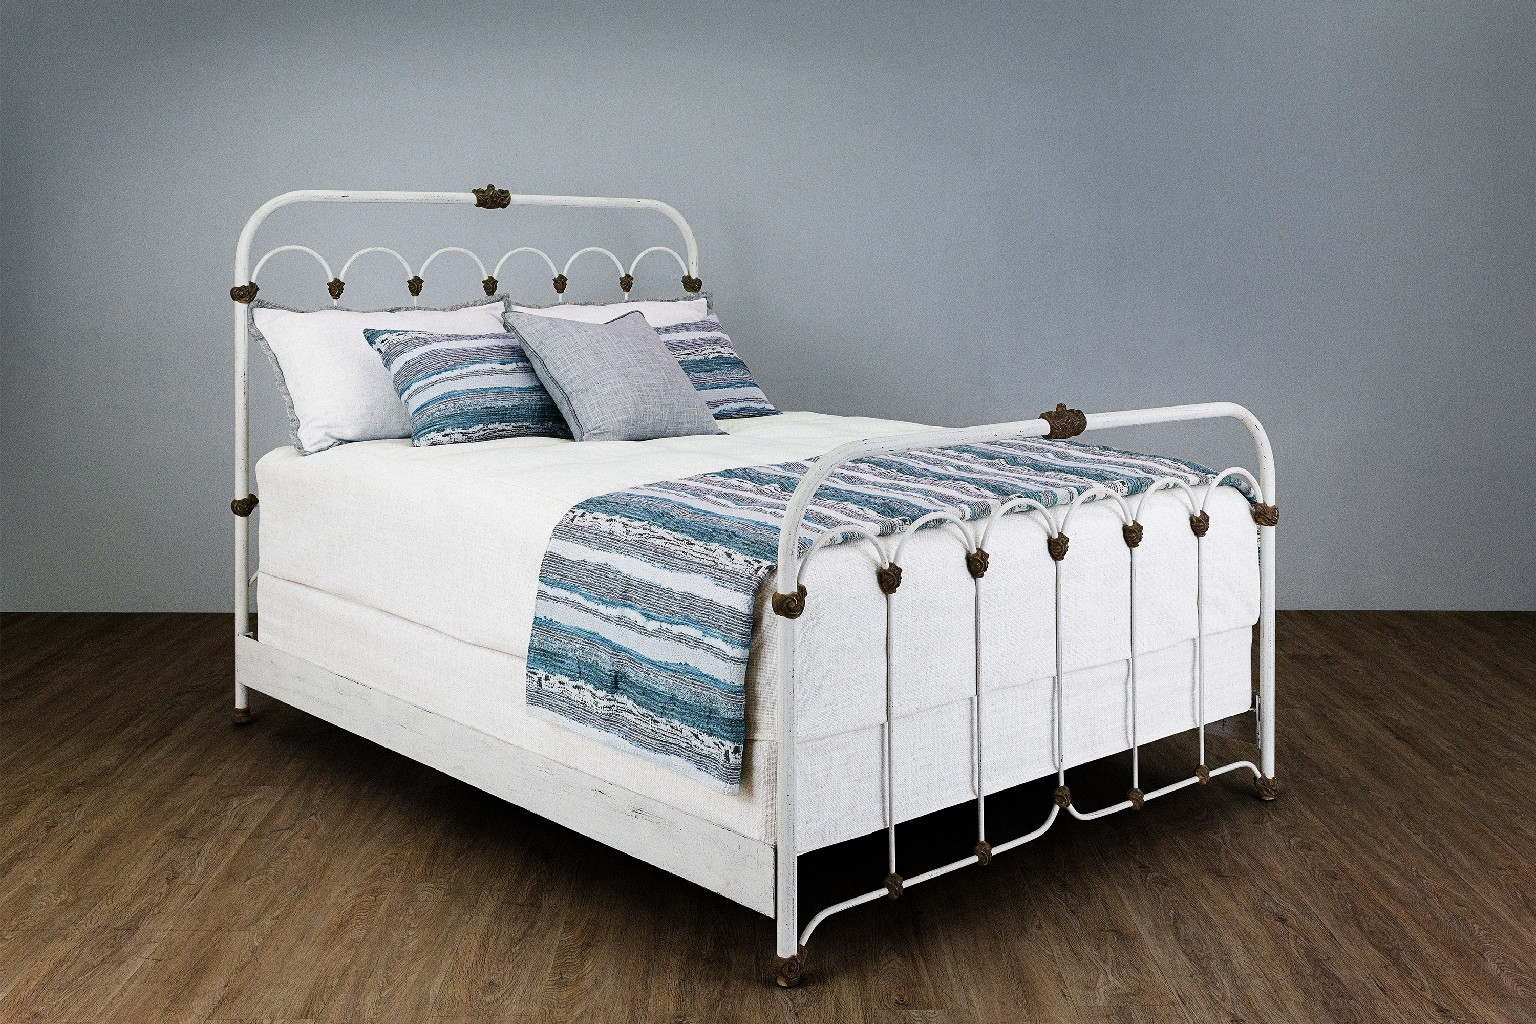 Taylor Gray Home Metal Bed Headboard